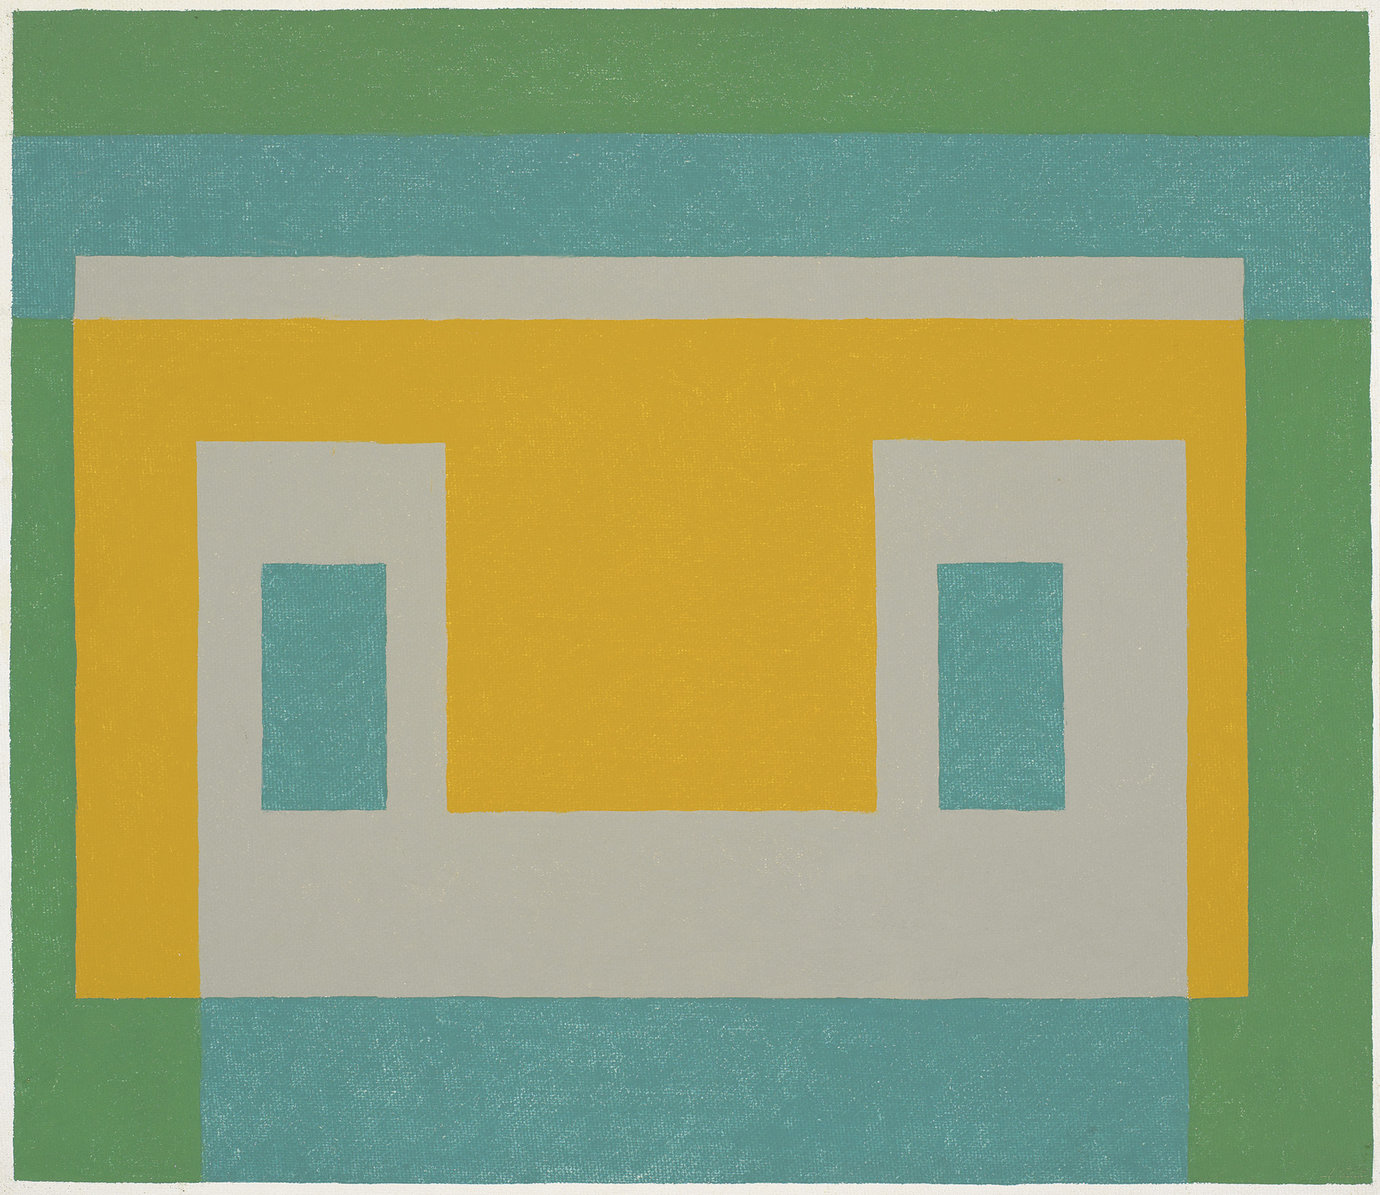 ", 1959. oil on masonite, 23"" x 27"" (58.4 cm x 68.6 cm)."